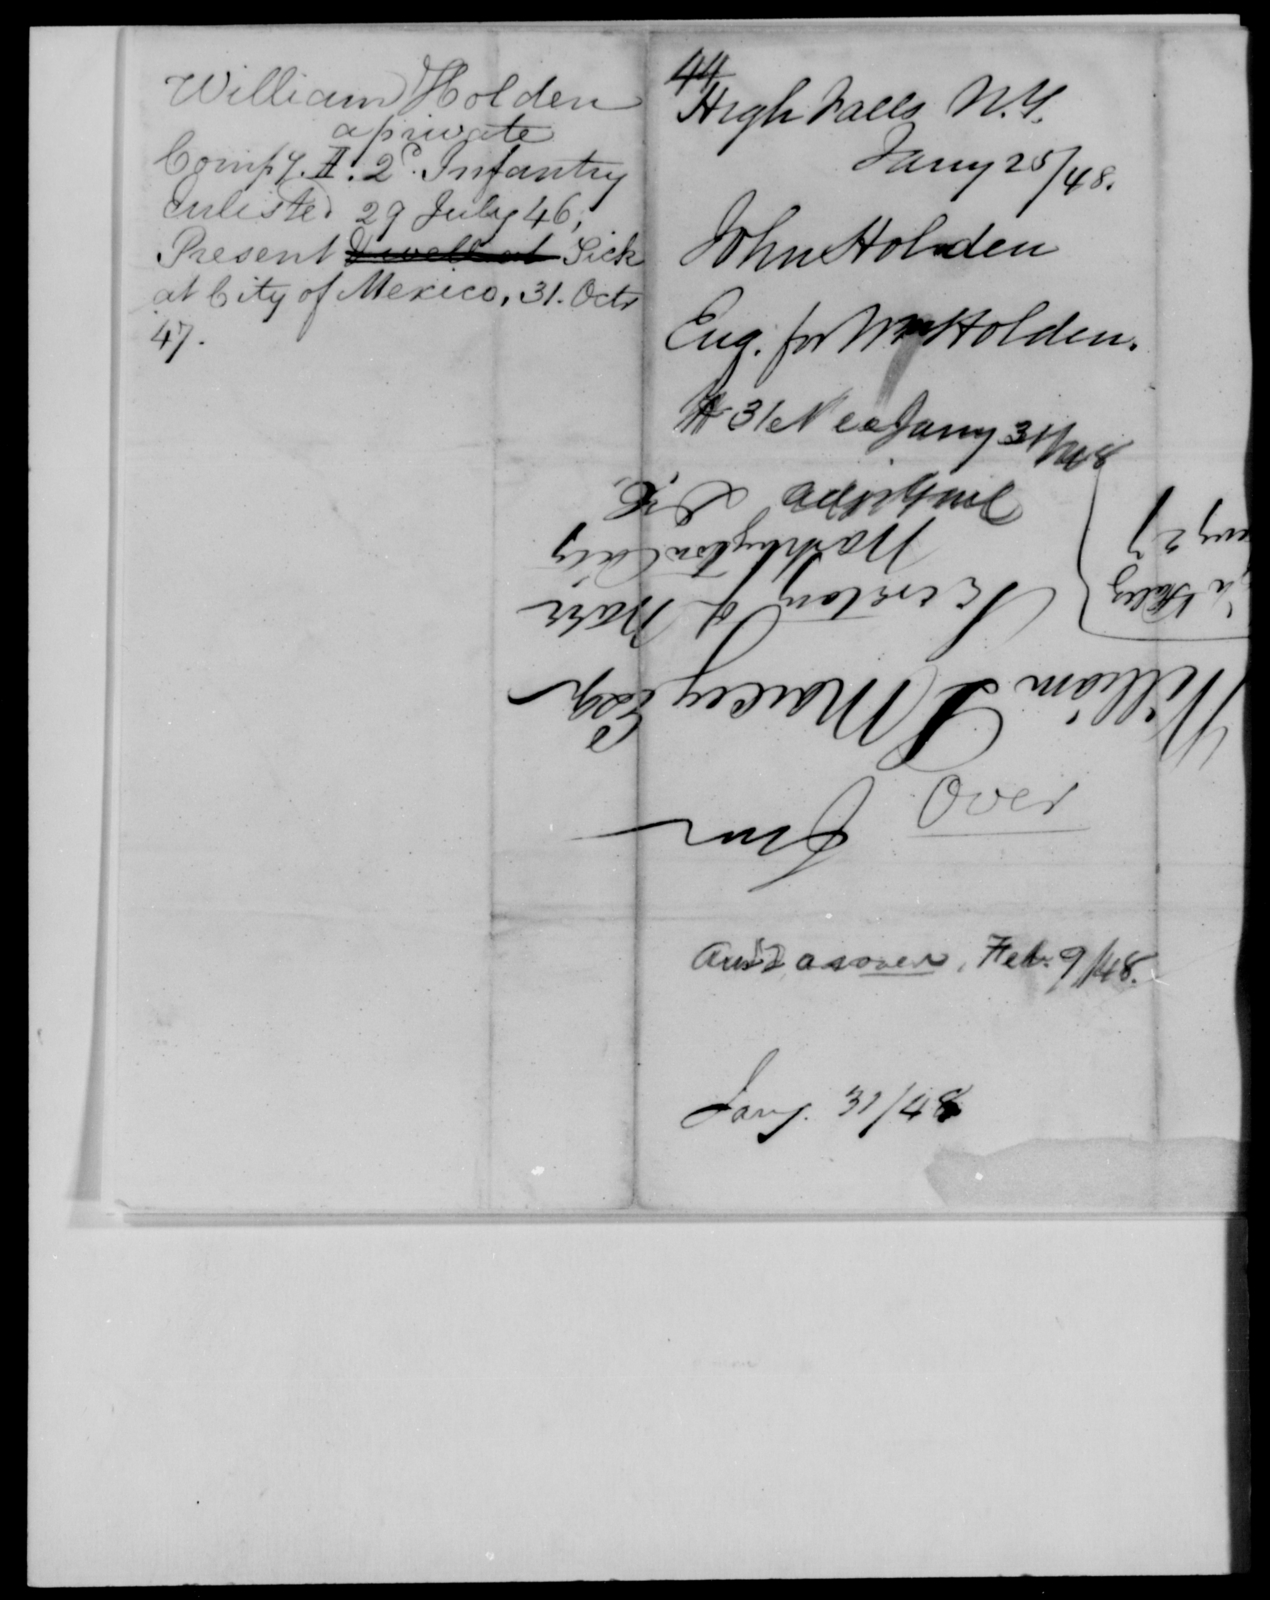 Holden, John - State: New York - Year: 1848 - File Number: H44